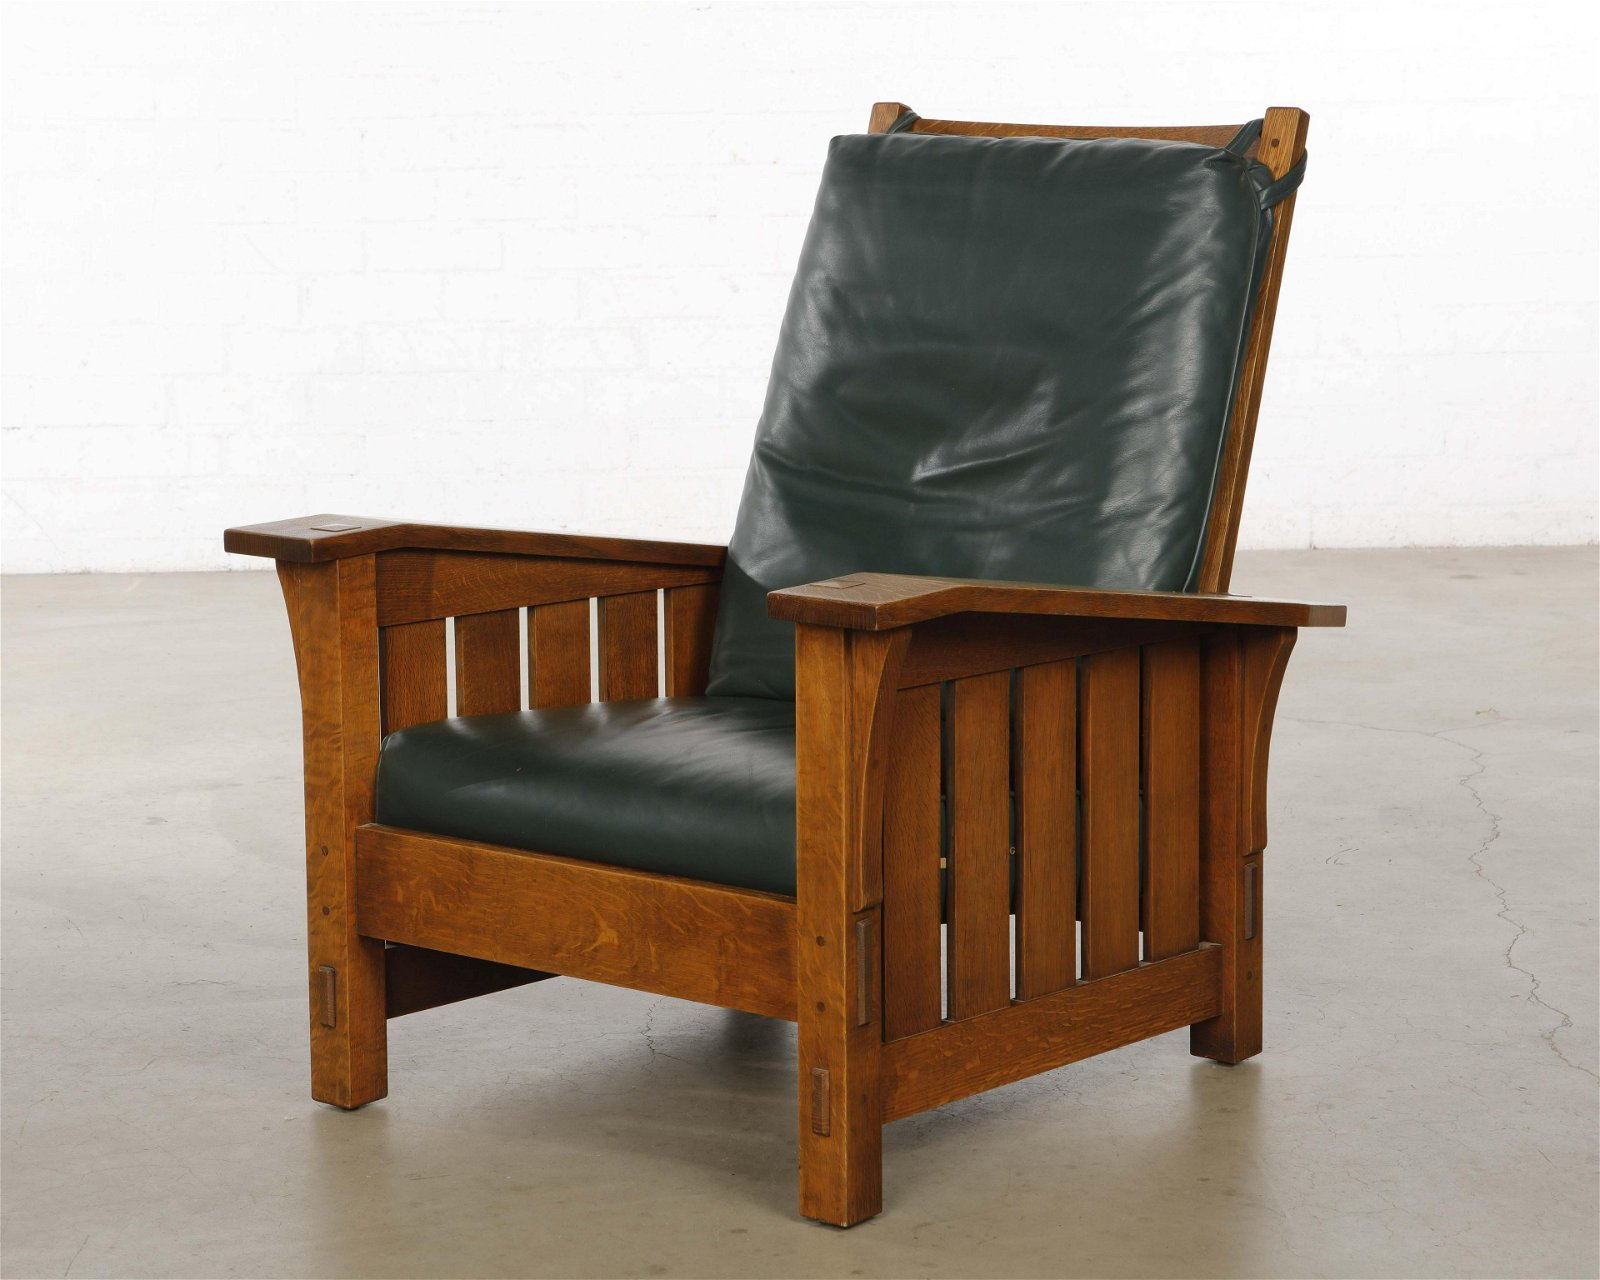 Outstanding Warren Hile Studio Mission Style Oak Morris Chair Alphanode Cool Chair Designs And Ideas Alphanodeonline